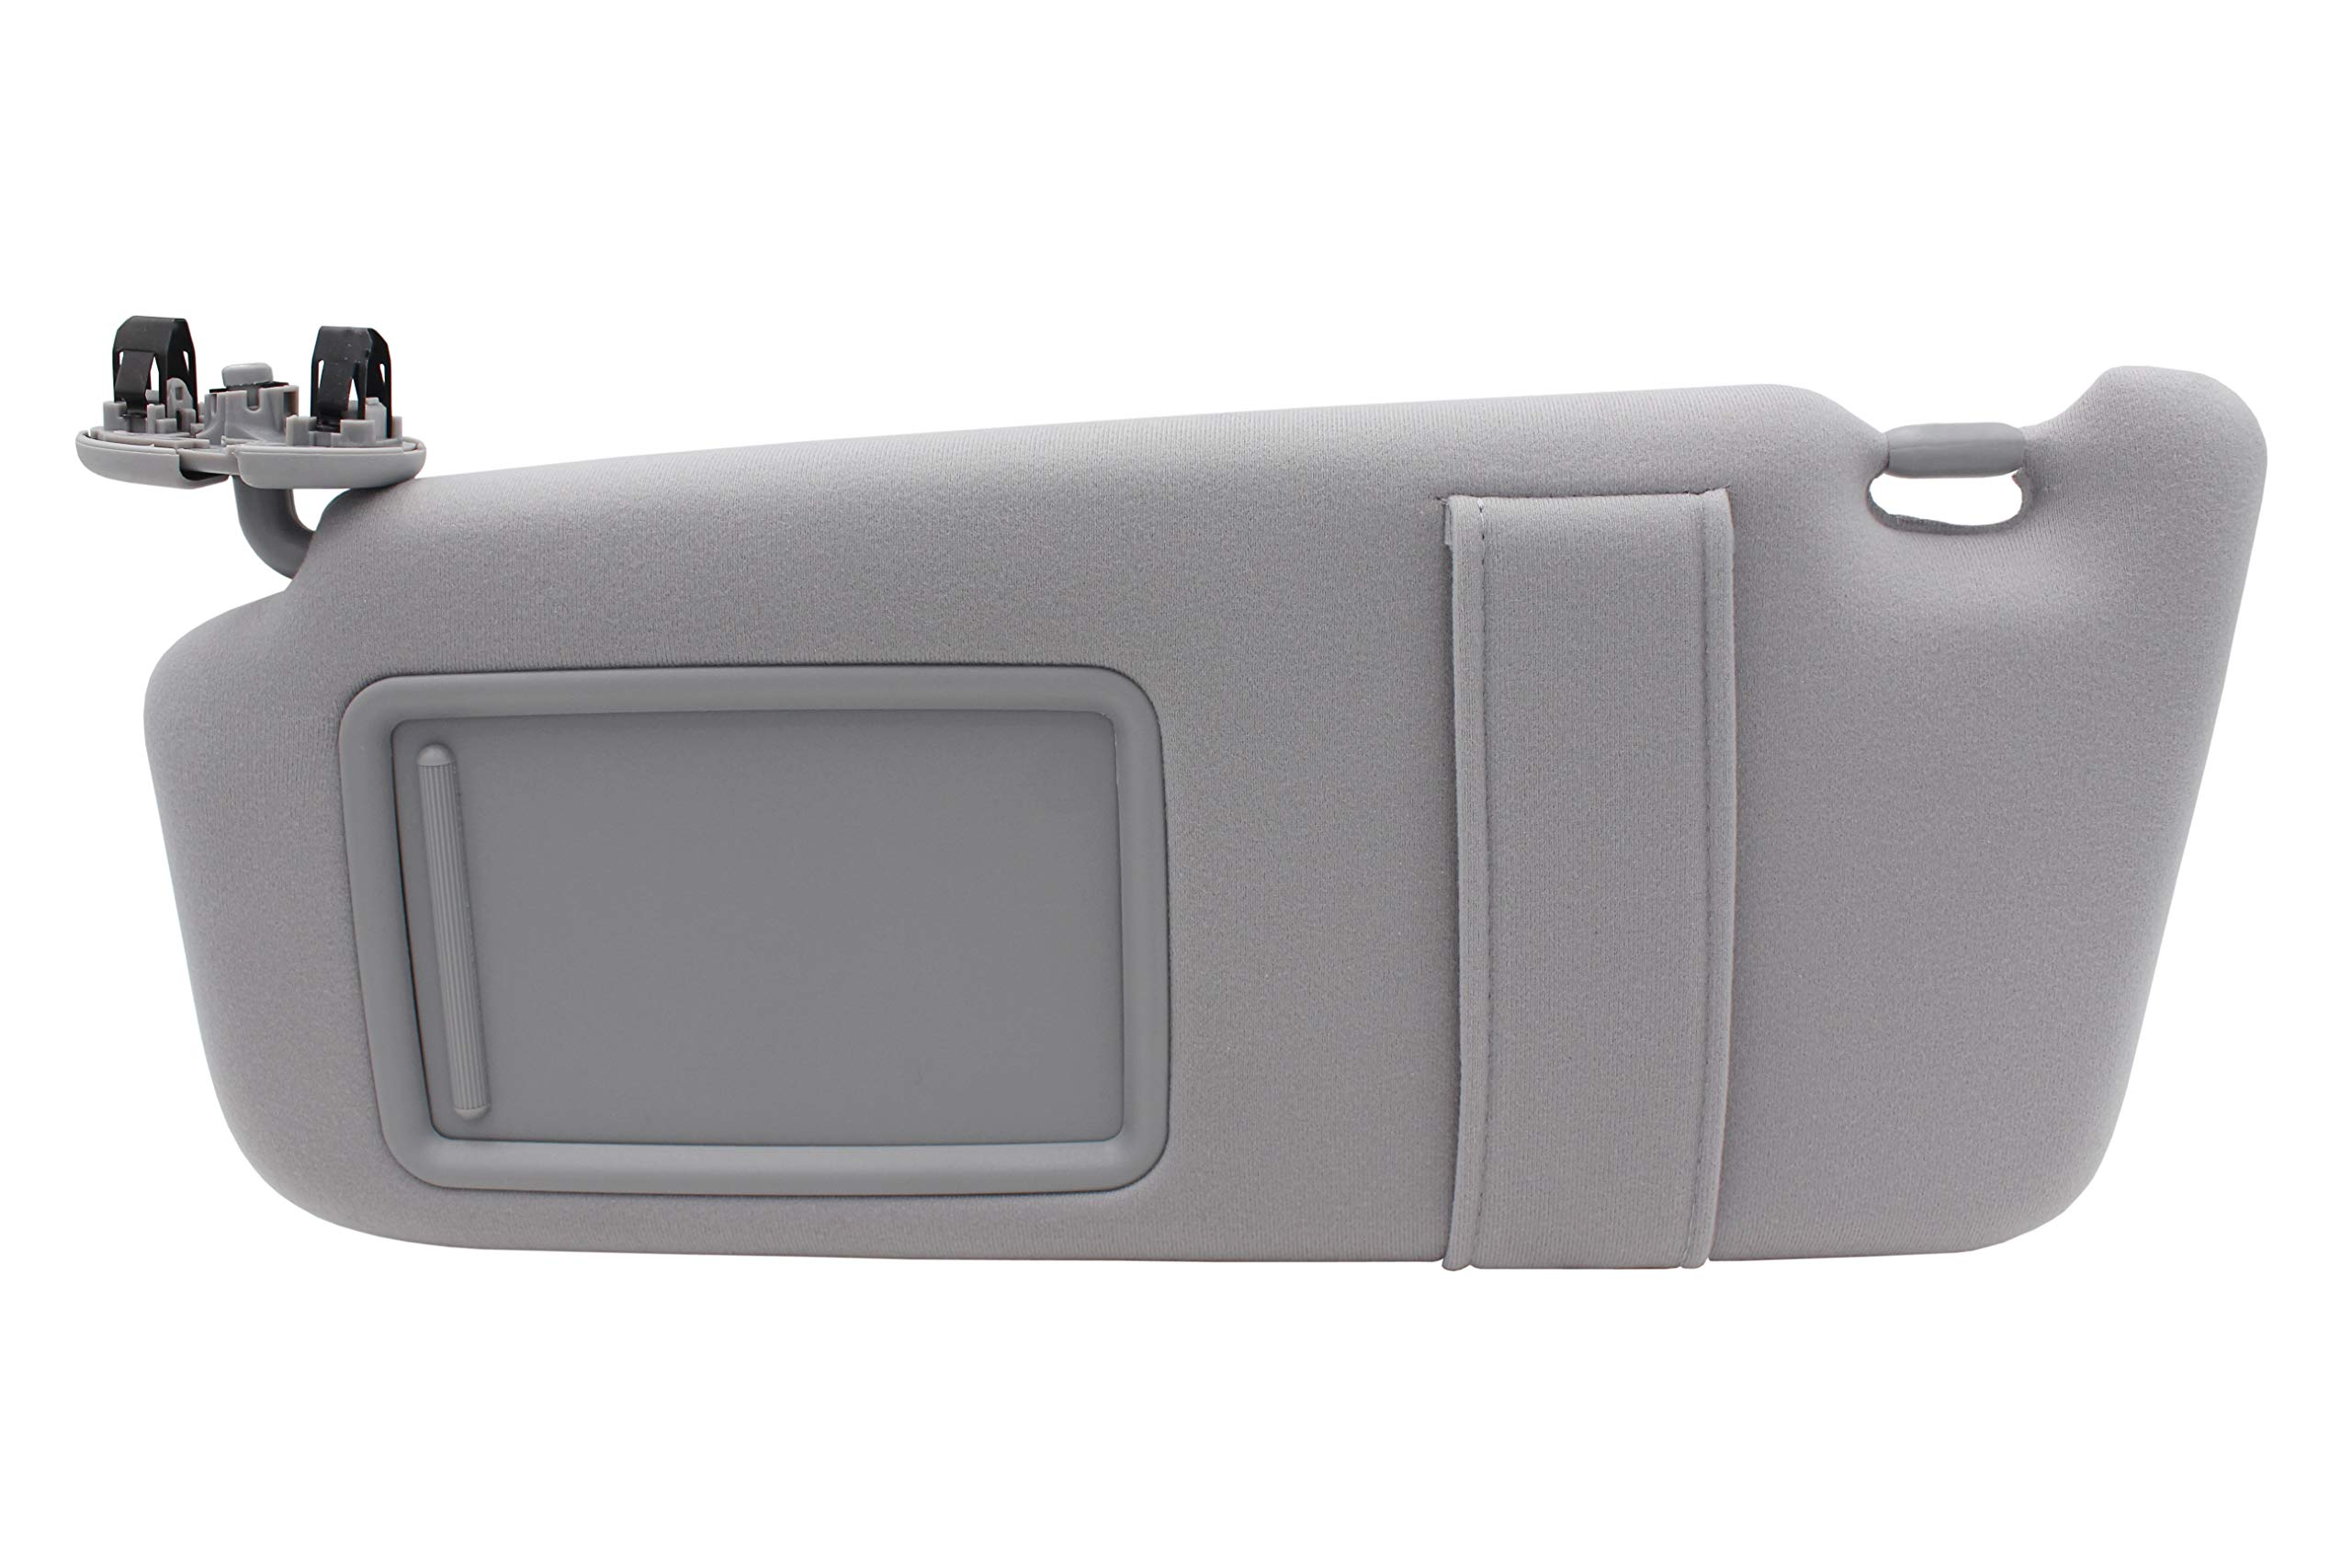 State Warehouse Left Driver Side Gray Windshield Sun Visor Mirror Fit for Toyota Camry 2007-2011 Toyota Camry Hybrid 2007-2011 Without Sunroof and Light Replace for 74320-06780-B0 Visor Assembly